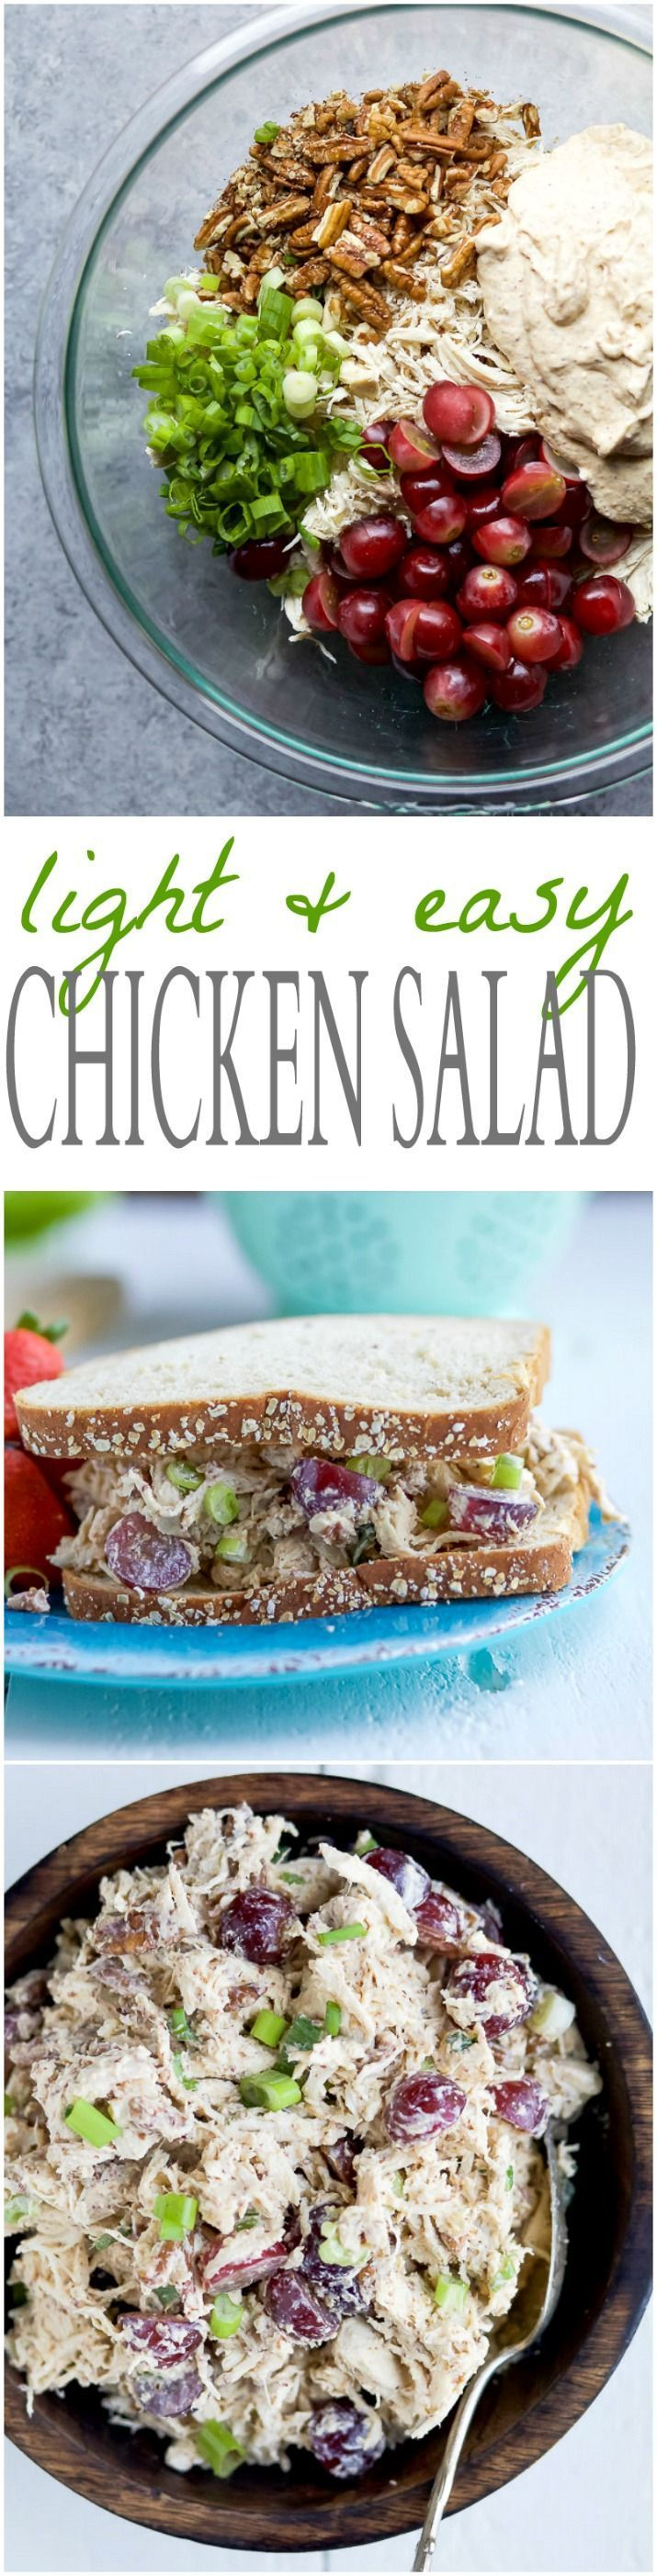 A LIGHT & EASY CHICKEN SALAD RECIPE that's low carb, high protein, and gluten free! This Chicken Salad is made with greek yogurt, mustard, grapes, and fresh lemon juice. Perfect for a quick lunch! | joyfulhealthyeats.com